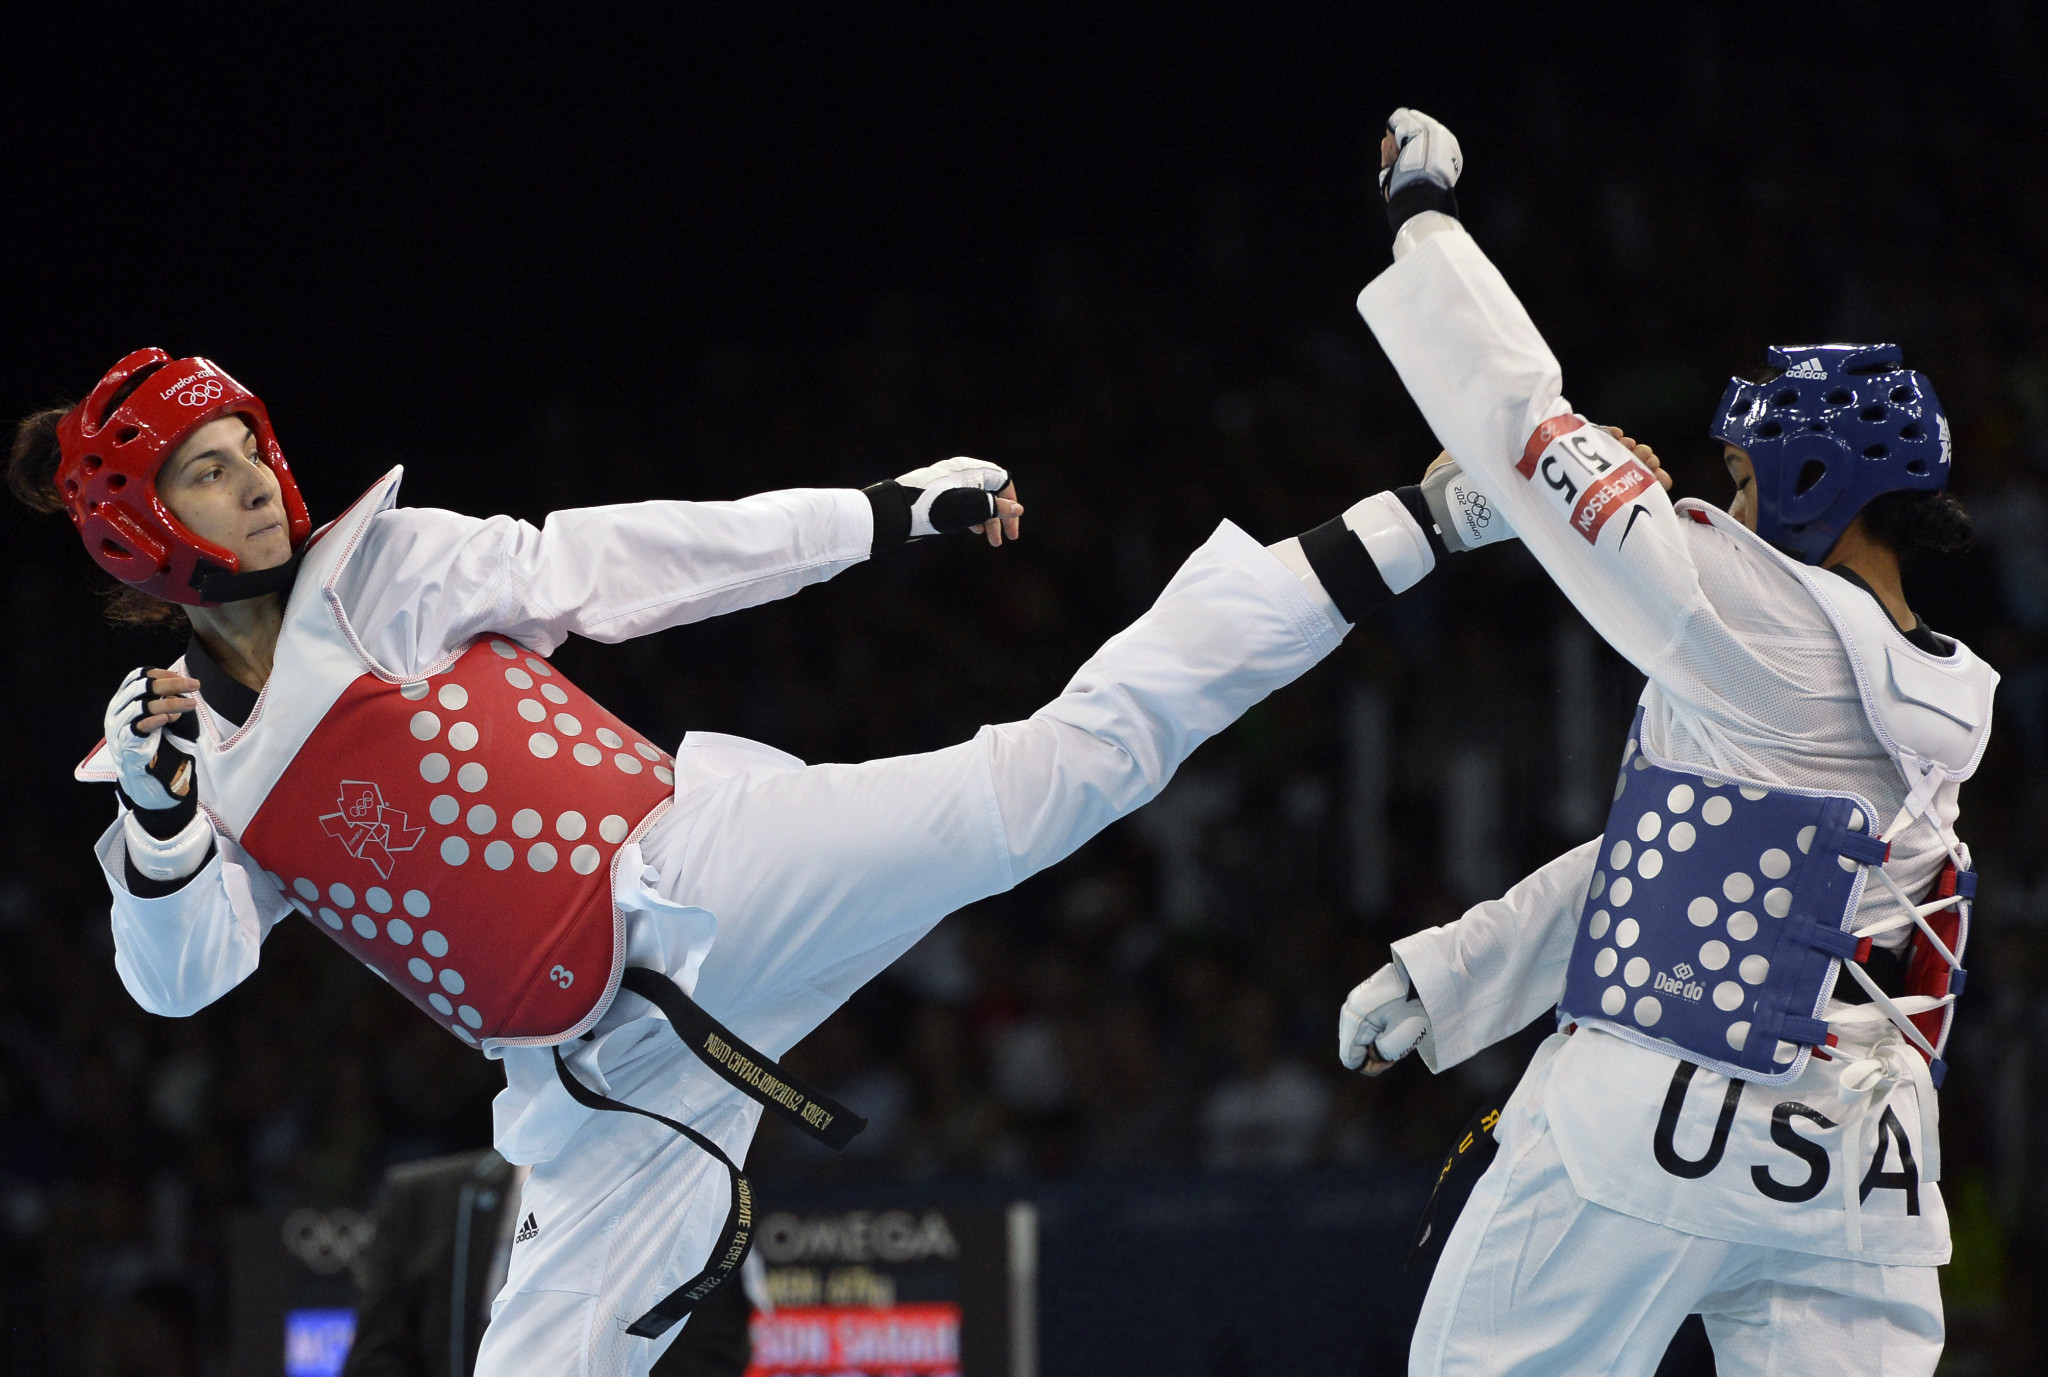 Sarah Stevenson is stepping down from her coaching role with GB Taekwondo ©GB Taekwondo